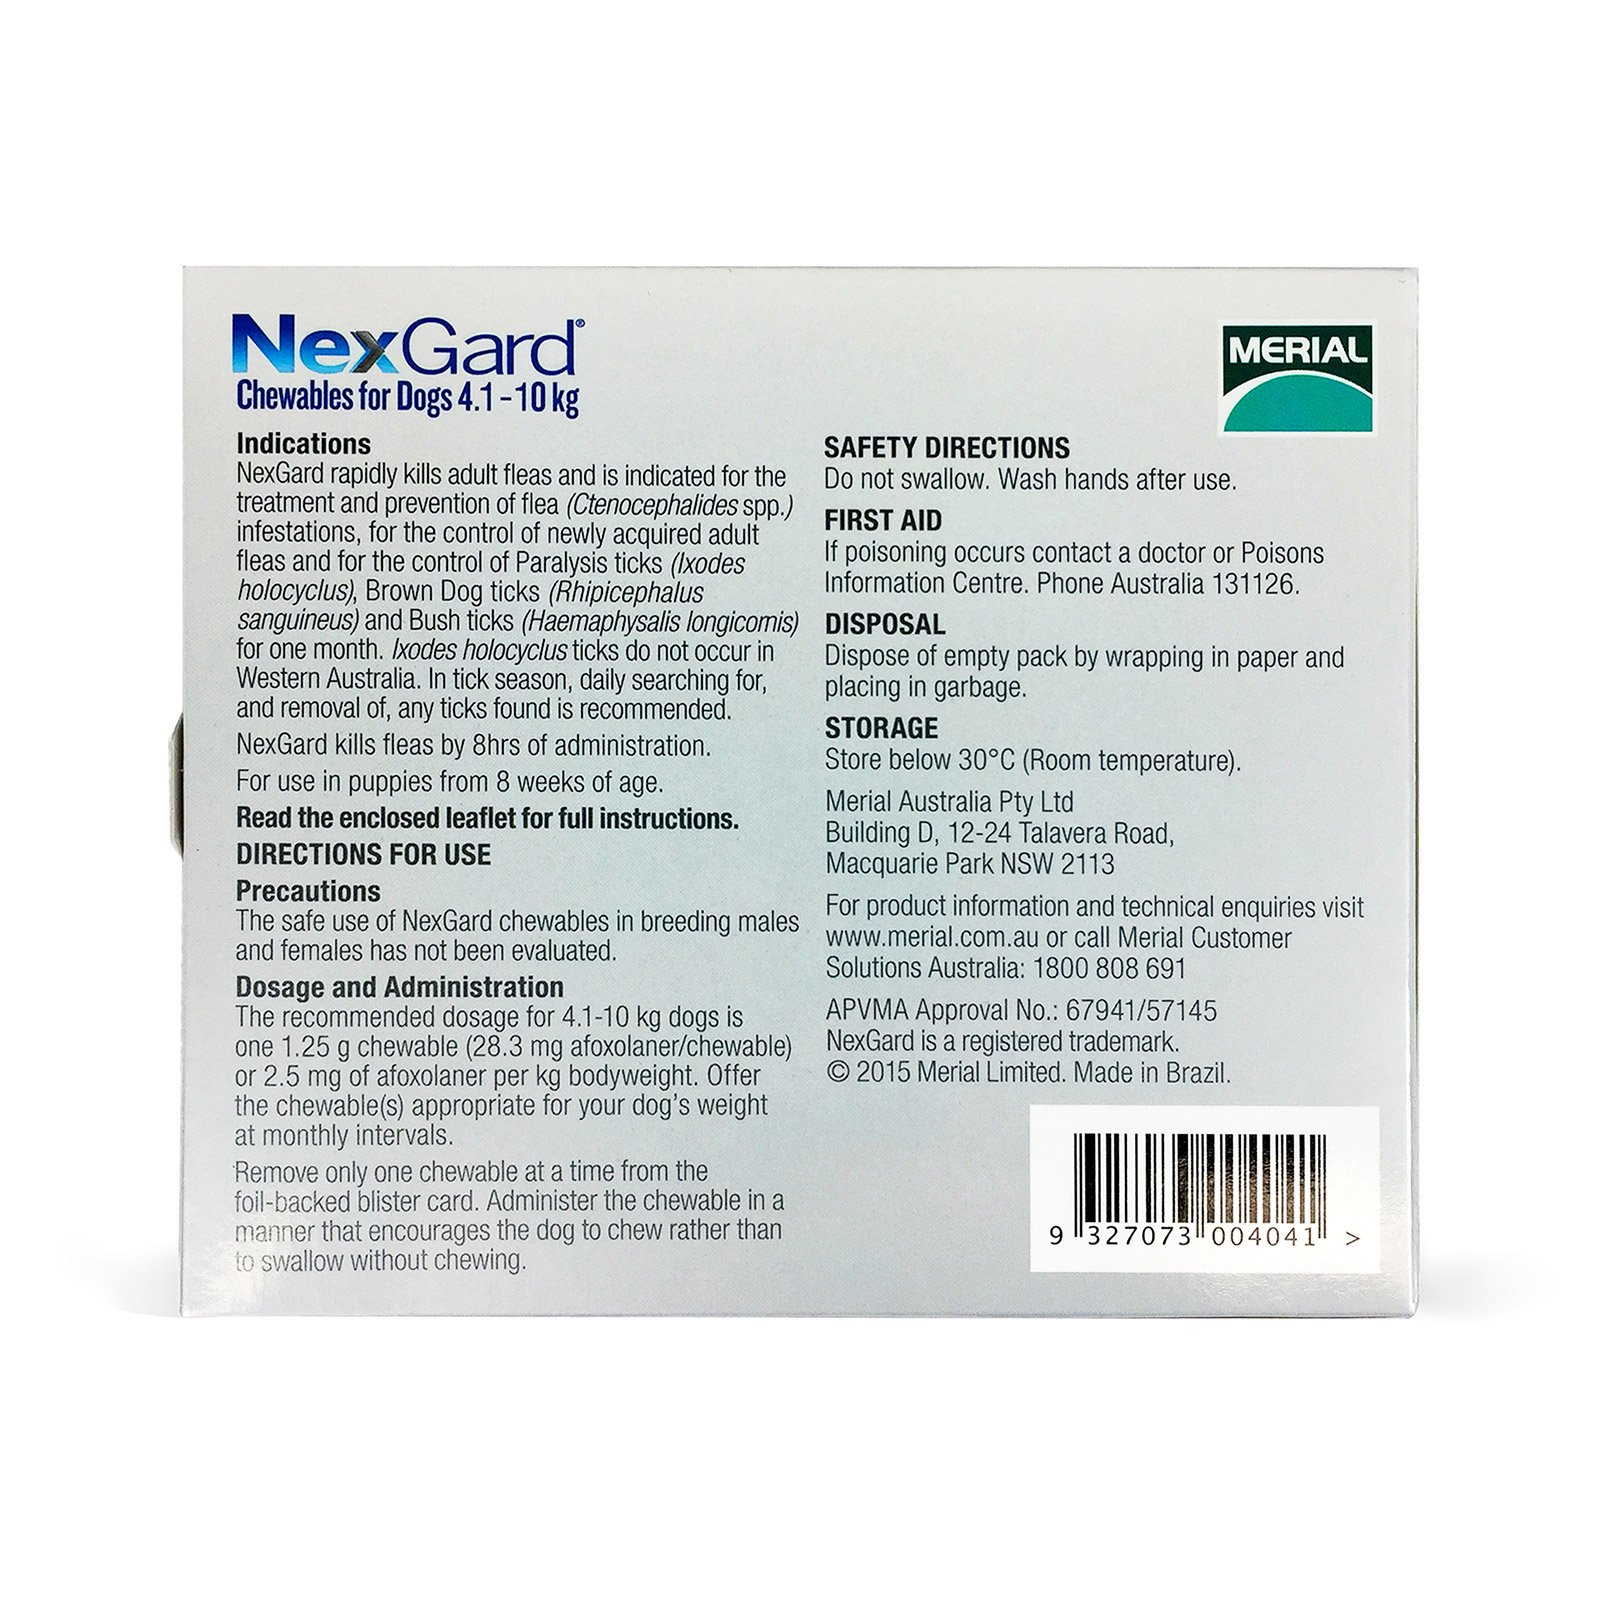 nexgard-chewables-for-dogs-4-1-10-kg_3-back.jpg